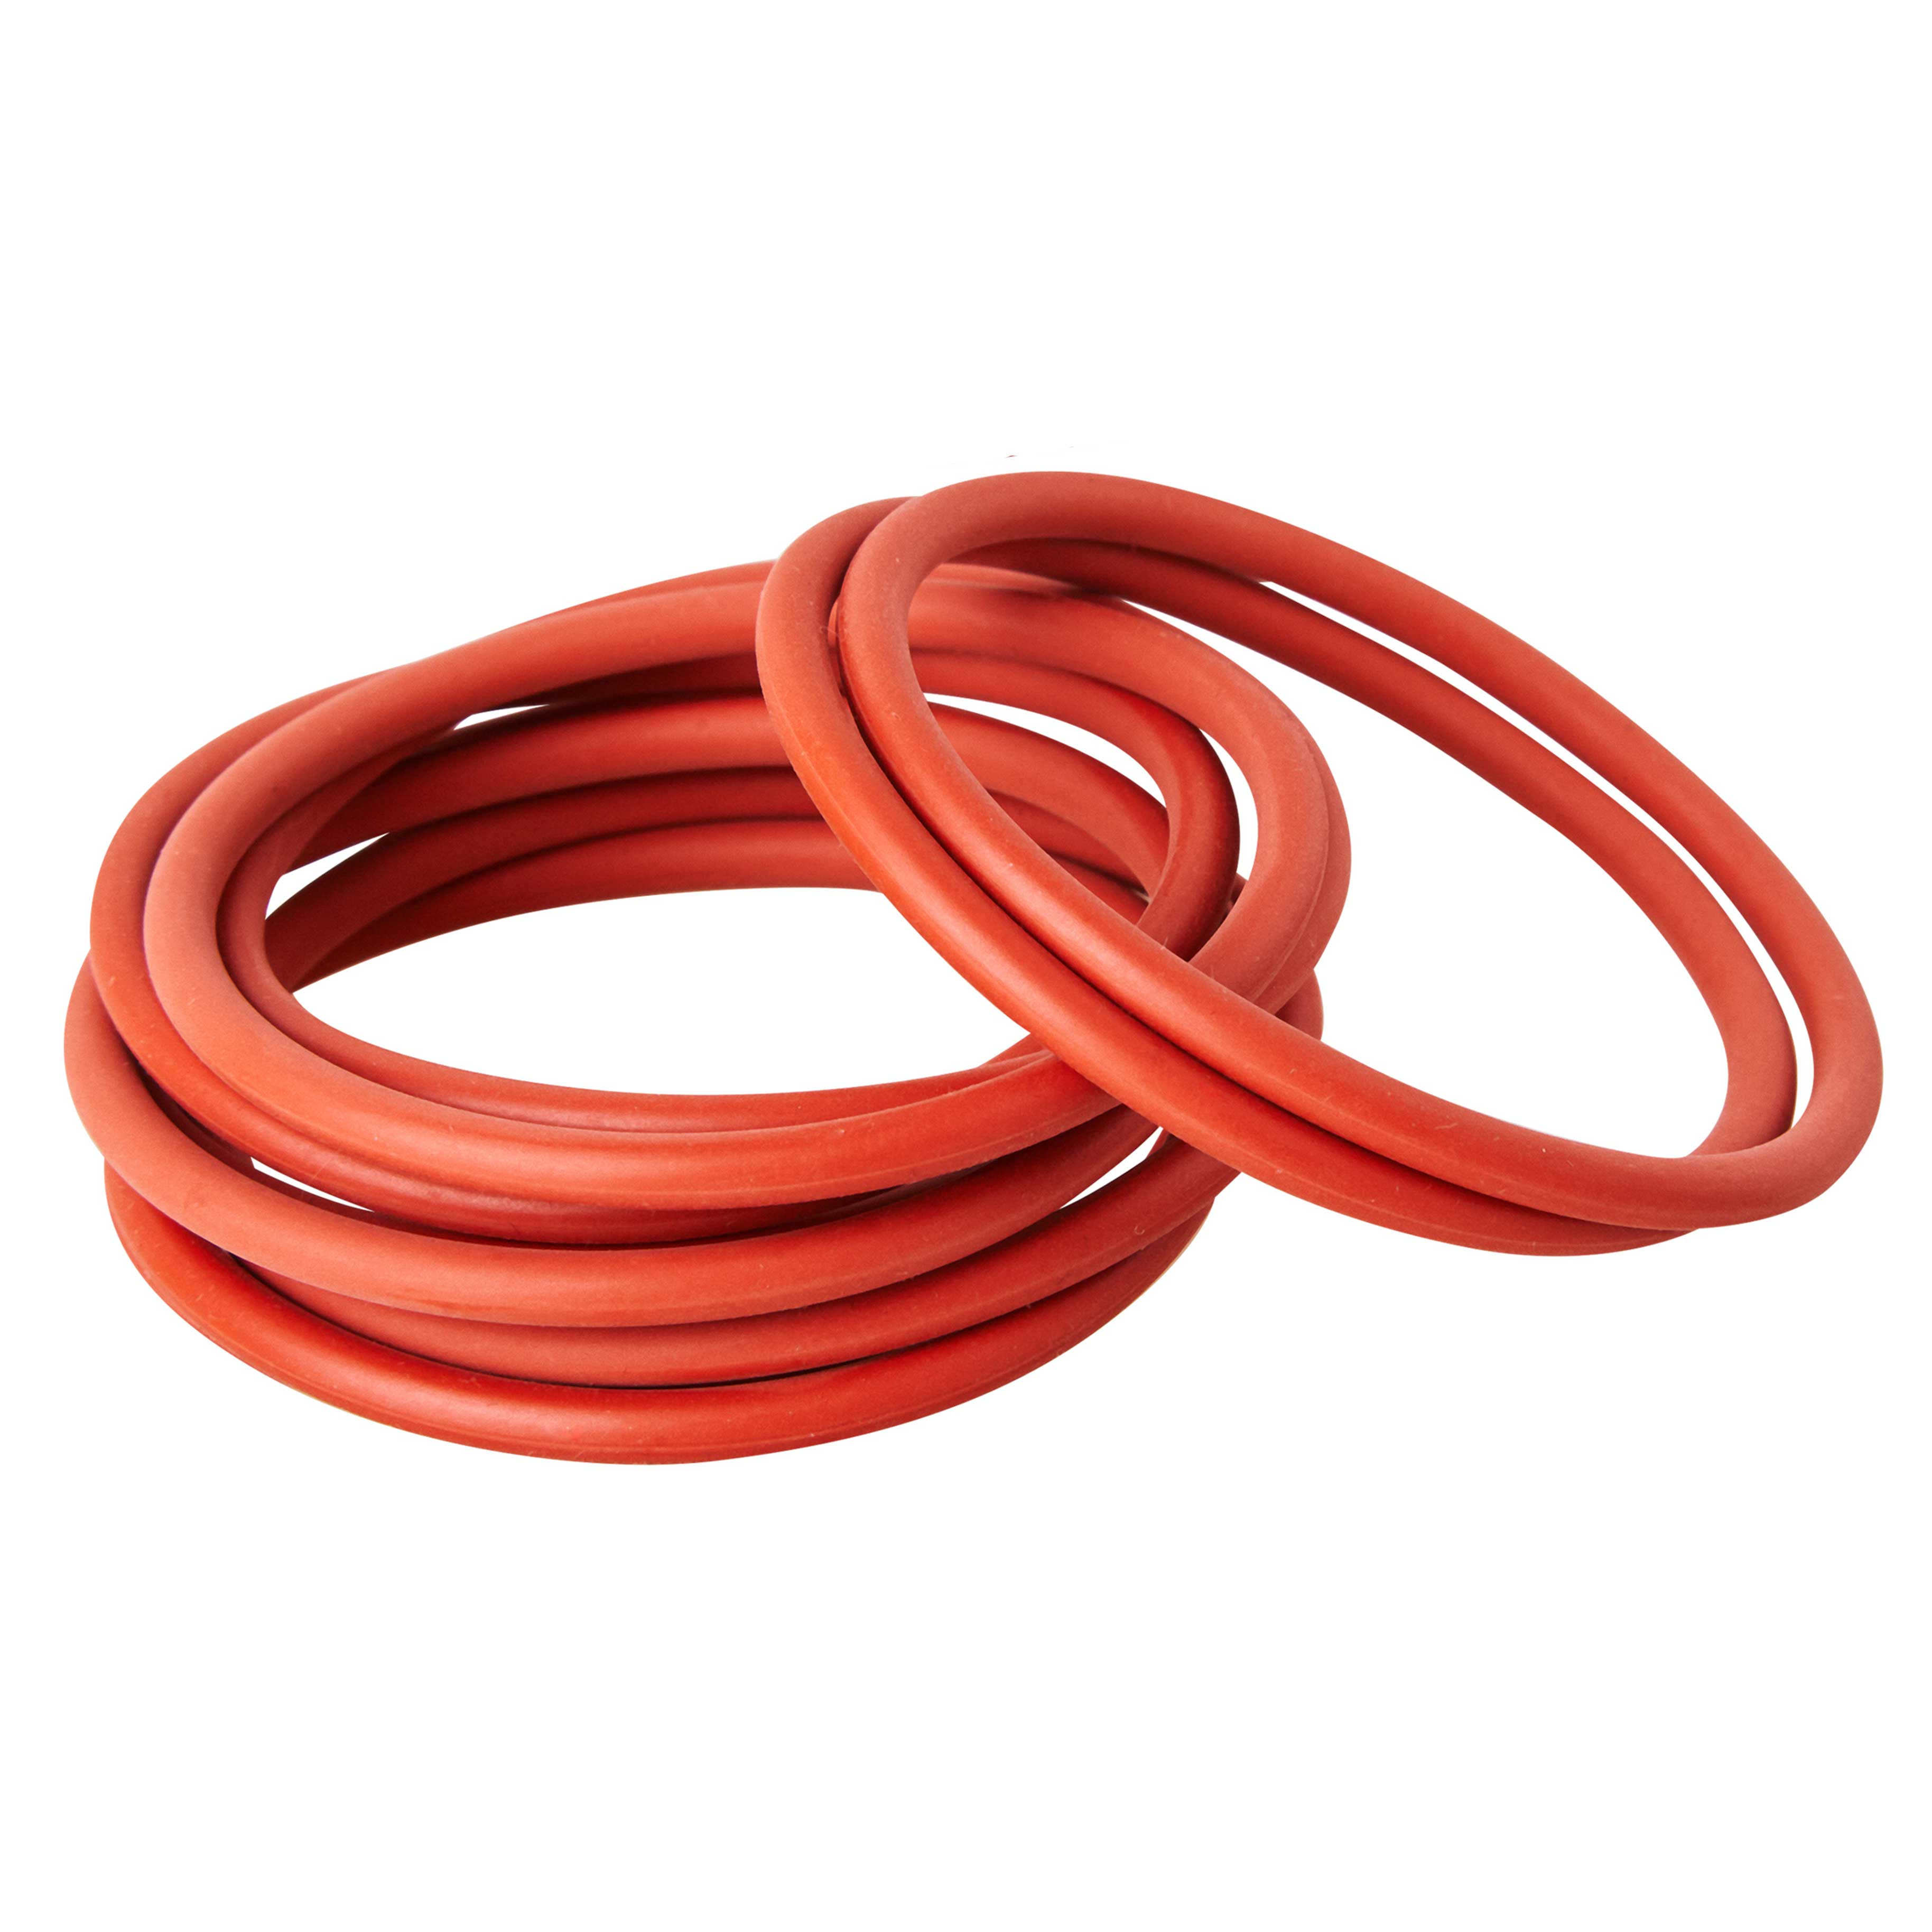 Silicone Rubber 55A Metric Seals O-Rings ID VMQ 18mm Inner Diameter